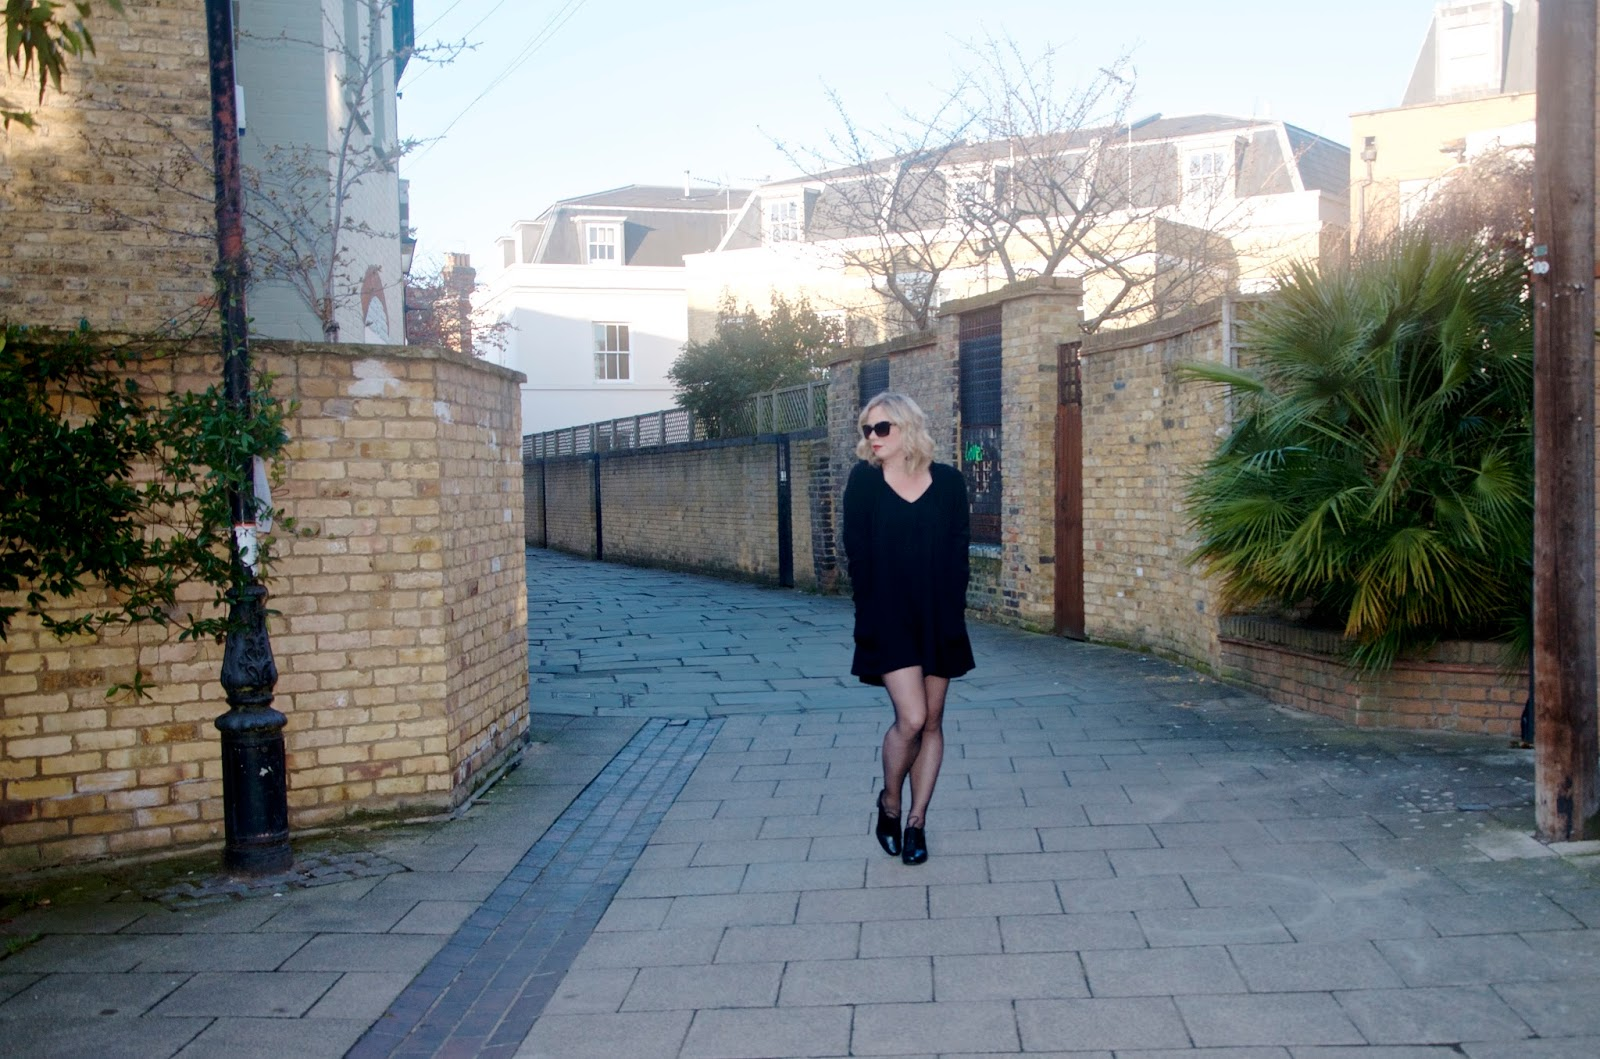 Walking down a lane in Putney